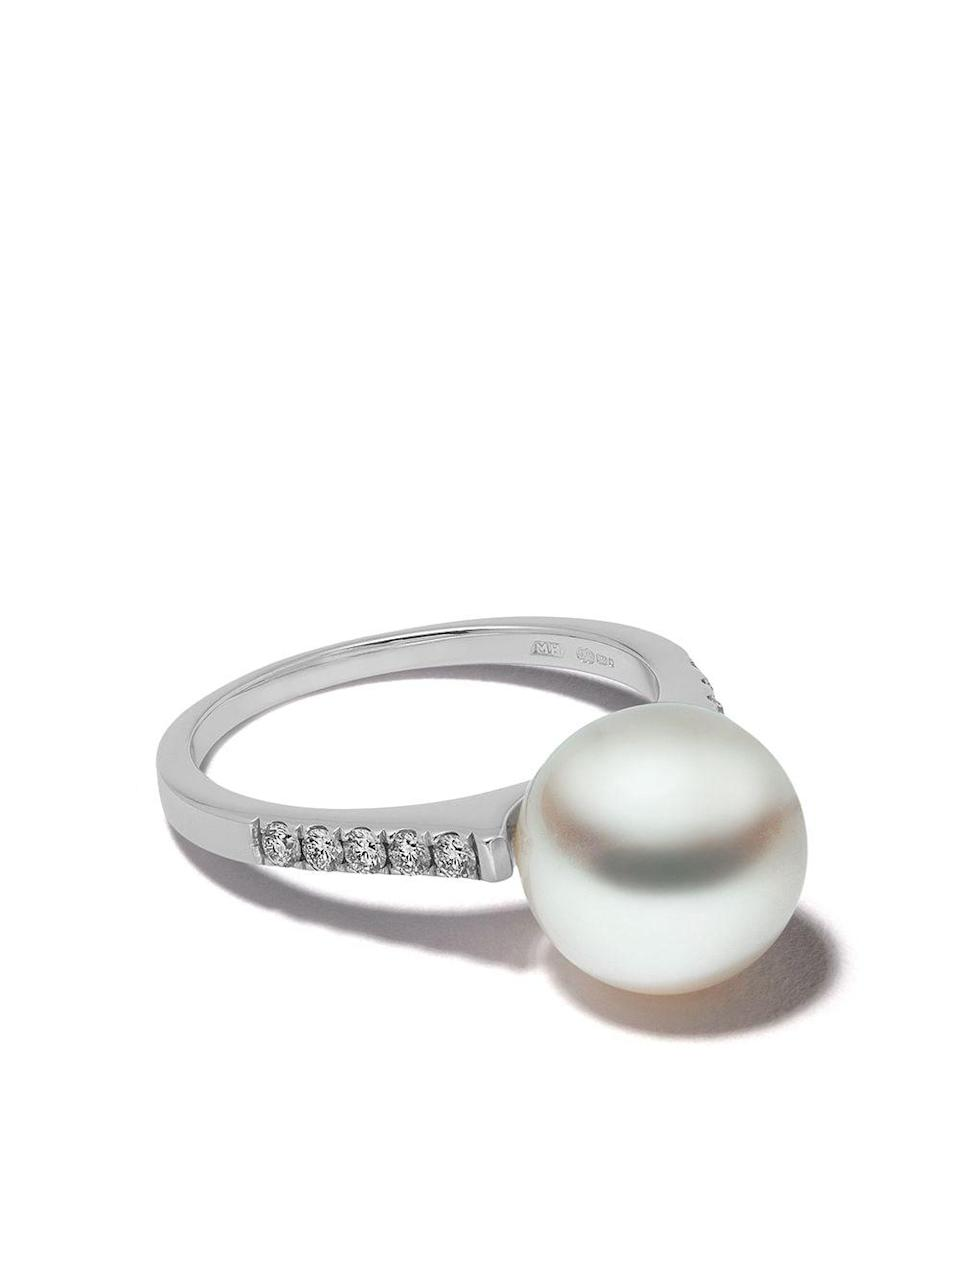 "<br><br><strong>Yoko London</strong> 18kt White Gold Classic Freshwater Pearl And Diamond Ri, $, available at <a href=""https://go.skimresources.com/?id=30283X879131&url=https%3A%2F%2Fwww.farfetch.com%2Fshopping%2Fwomen%2Fyoko-london-18kt-white-gold-classic-freshwater-pearl-and-diamond-ring-item-14619479.aspx%3Fstoreid%3D12325"" rel=""nofollow noopener"" target=""_blank"" data-ylk=""slk:Farfetch"" class=""link rapid-noclick-resp"">Farfetch</a>"